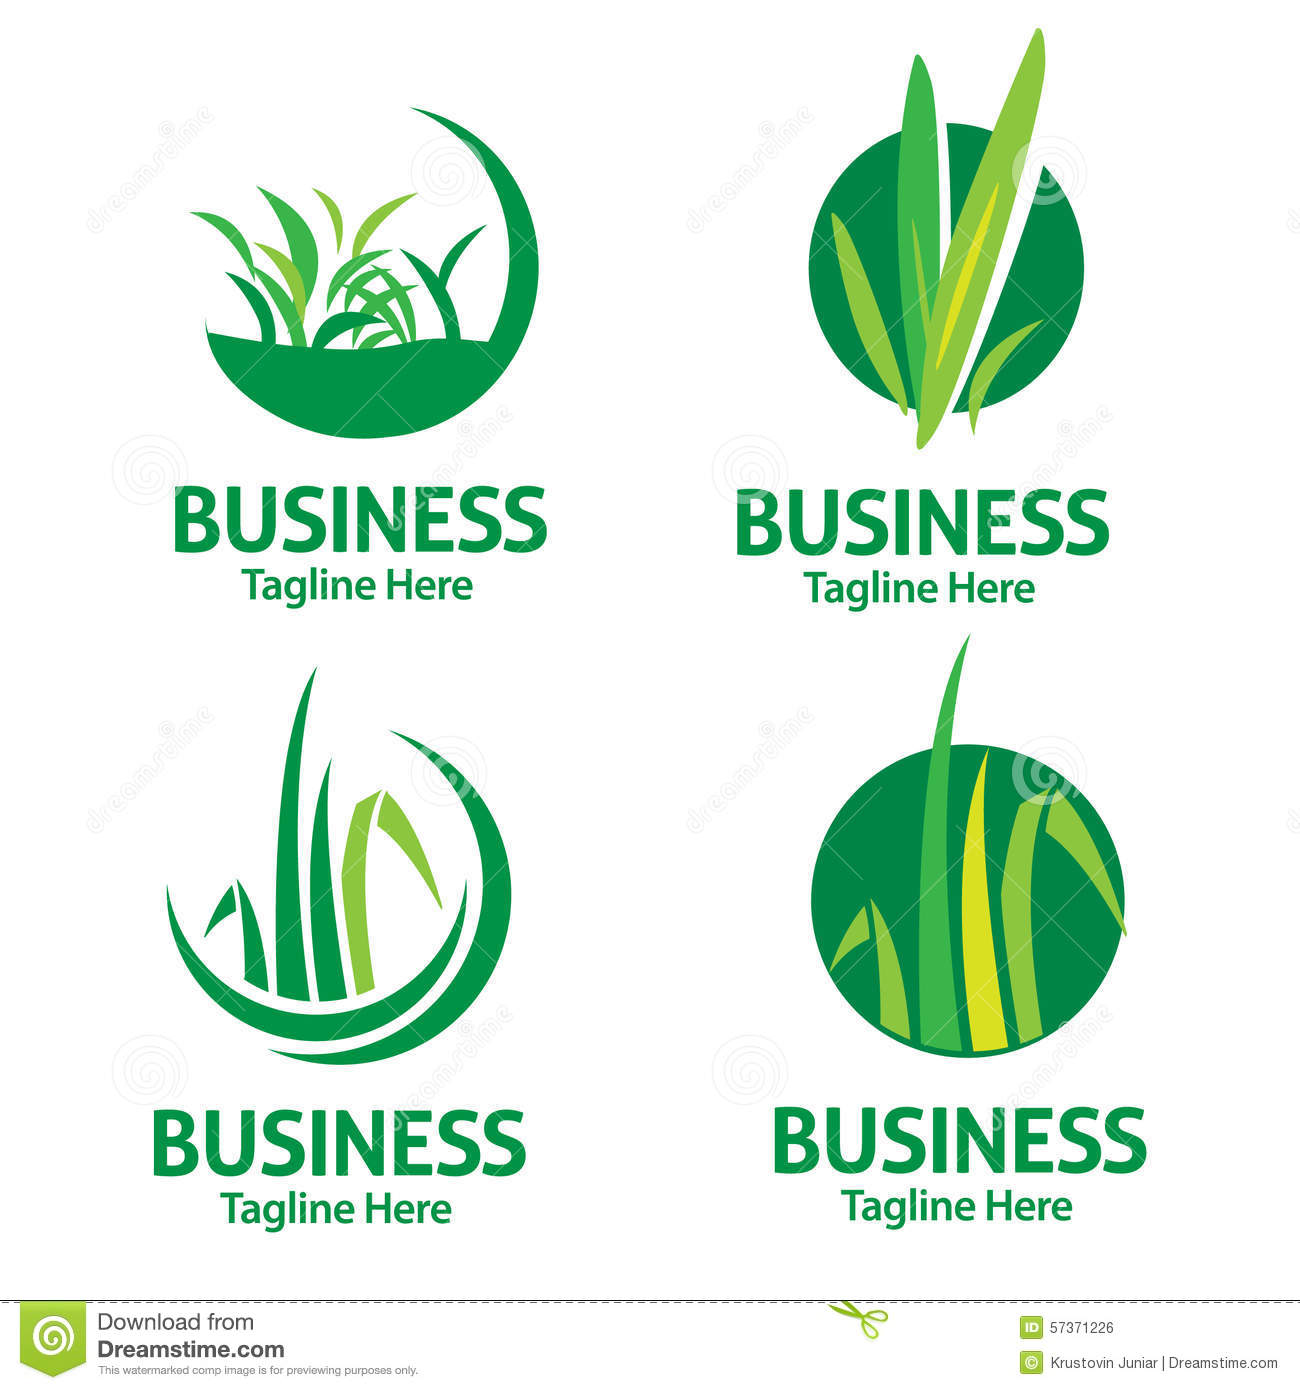 Lawn care logos free images galleries for Lawn care companies